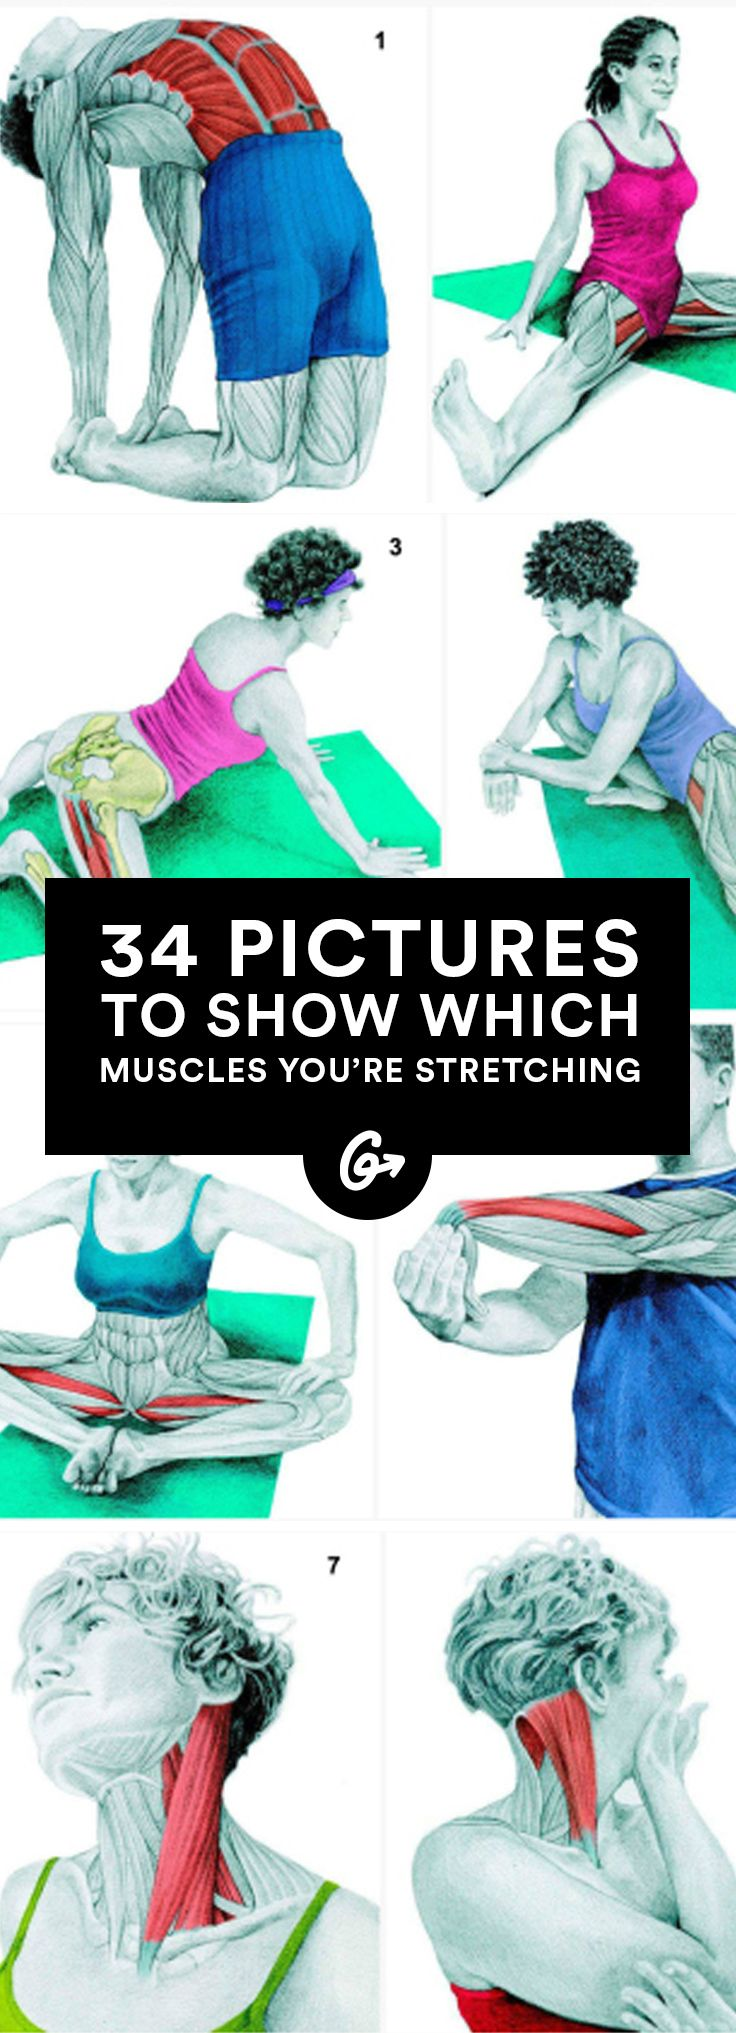 Learn Which Muscles You Are Stretching via greatist: Choose the best stretches for you and learn how to do them correctly to achieve your goals while avoiding injury. #Illustrations #Muscle_Stretches #Pilates #Yoga